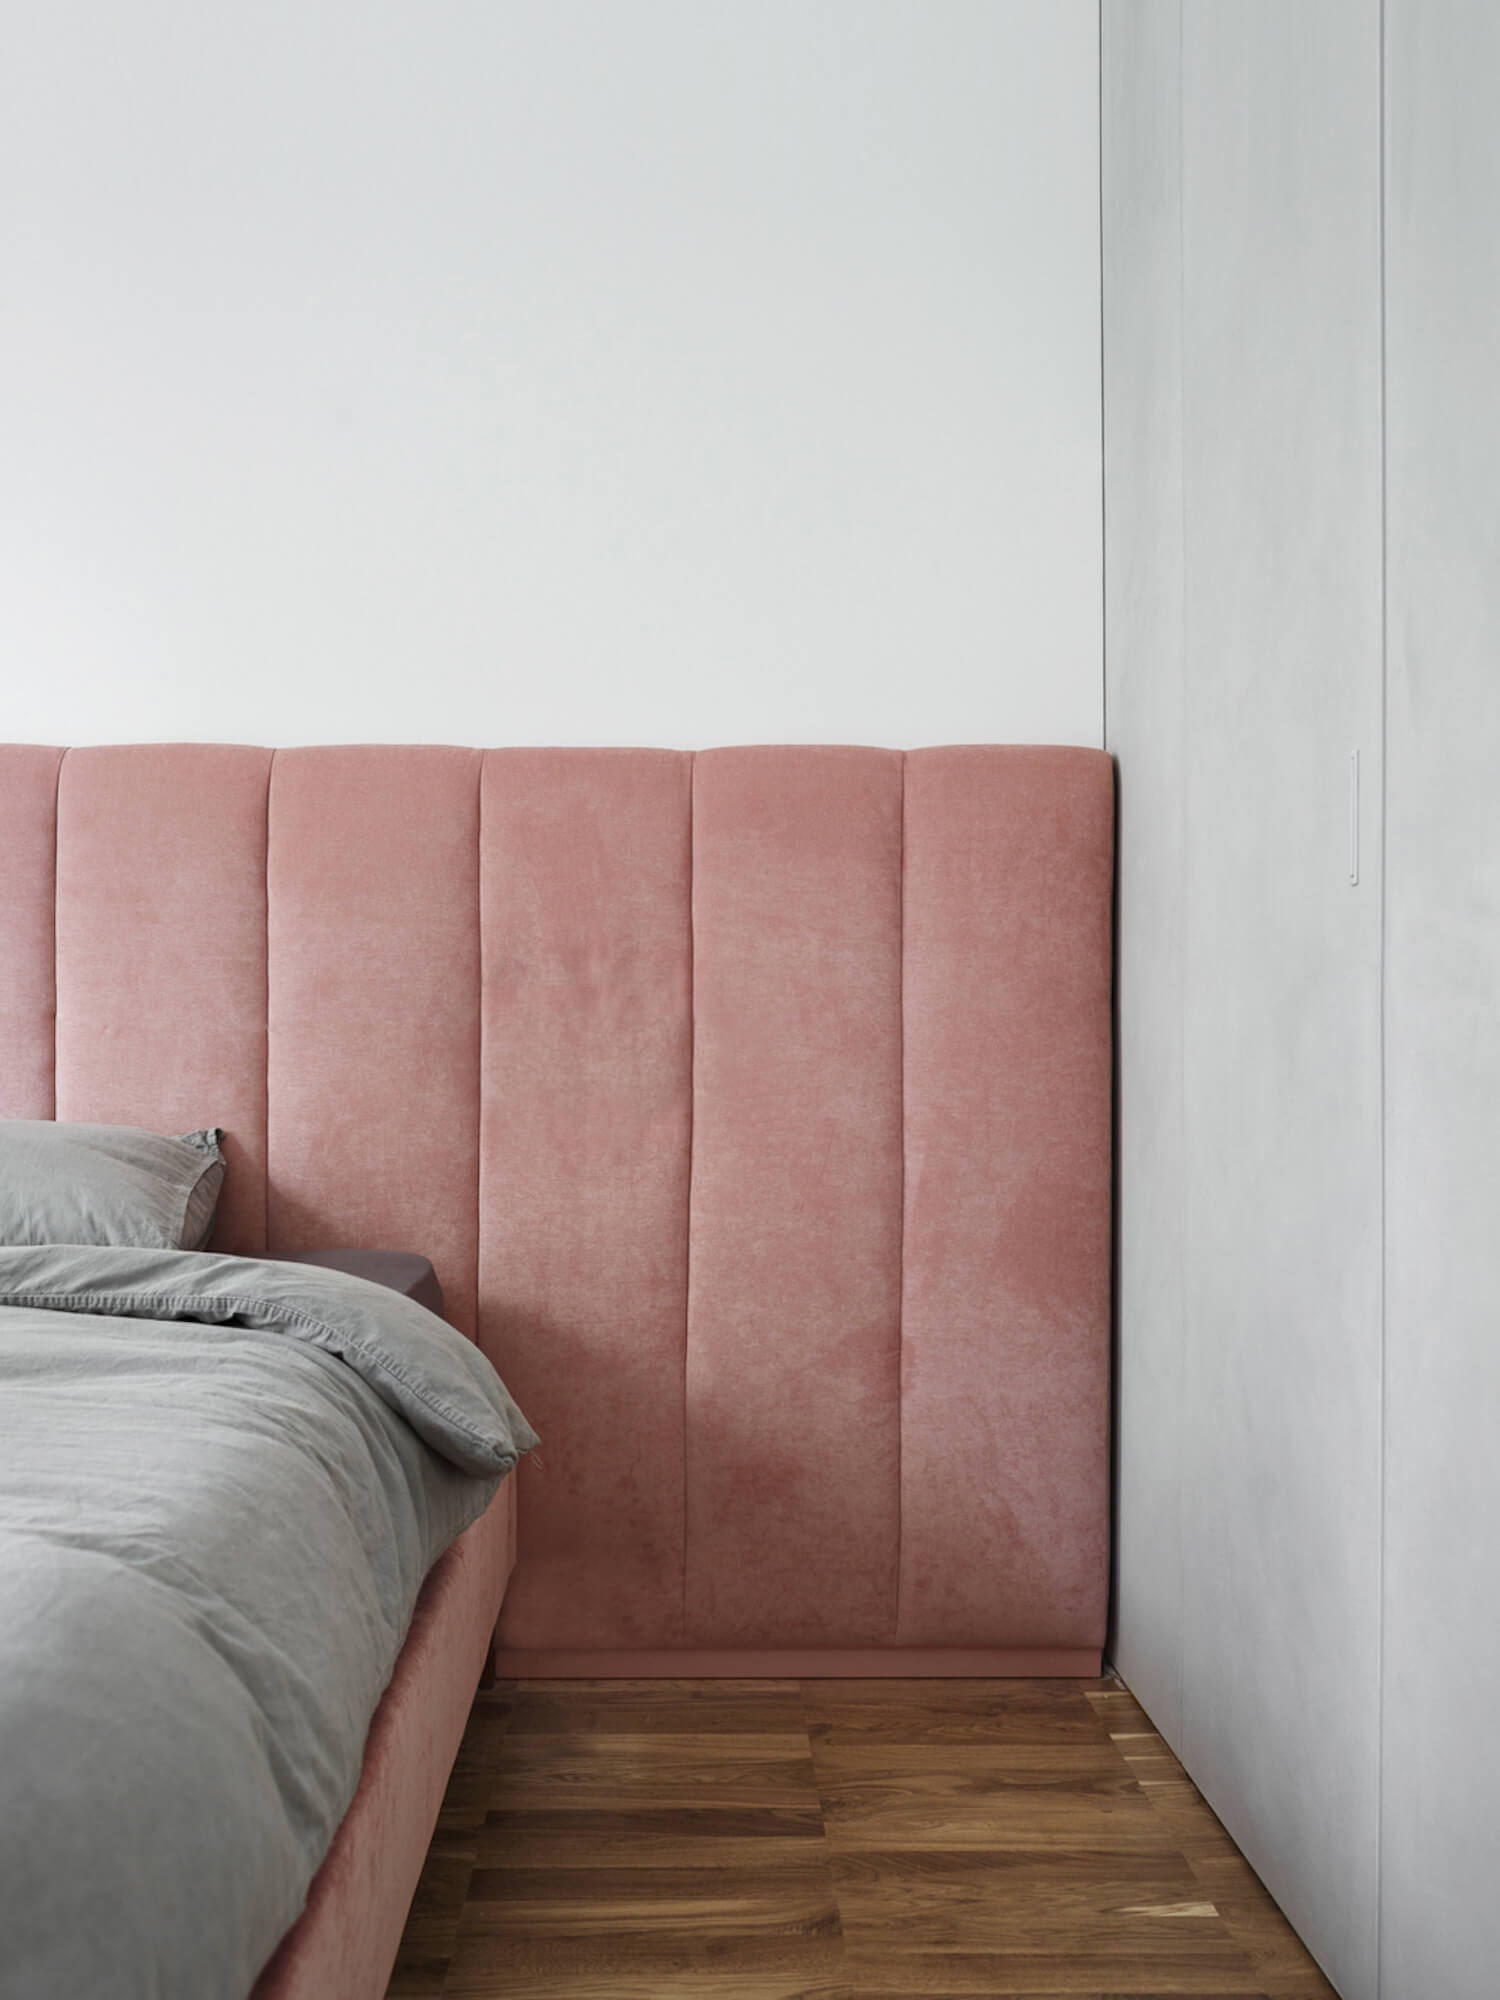 The Nordroom - Creative Headboard and Bedroom Styling Ideas (design by Crosby Studios)